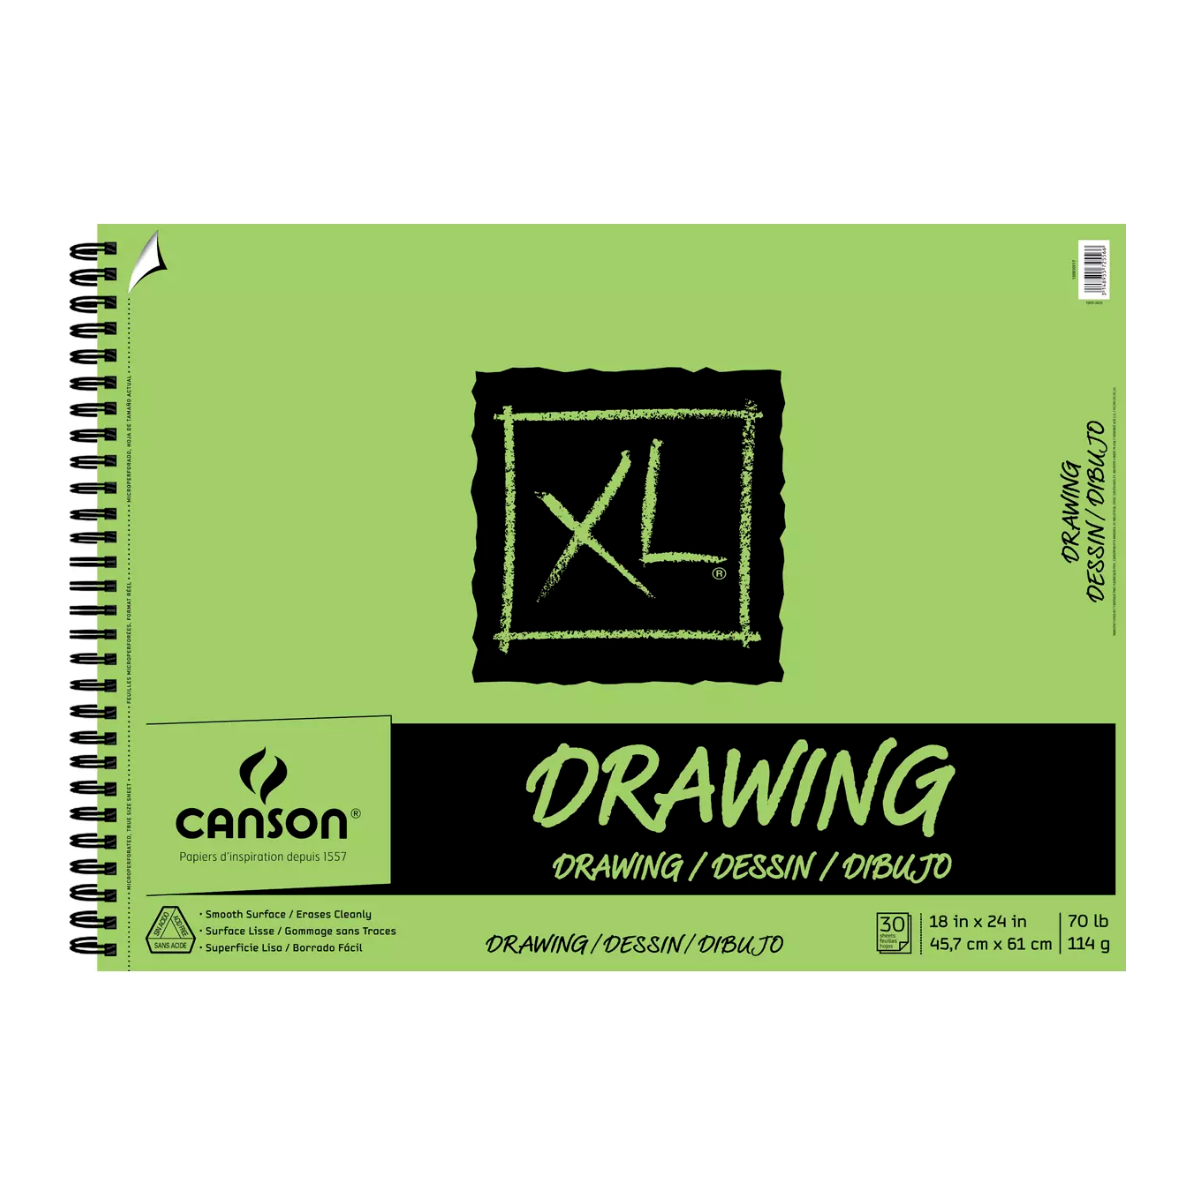 Canson XL Drawing Pad - 18 x 24 inches